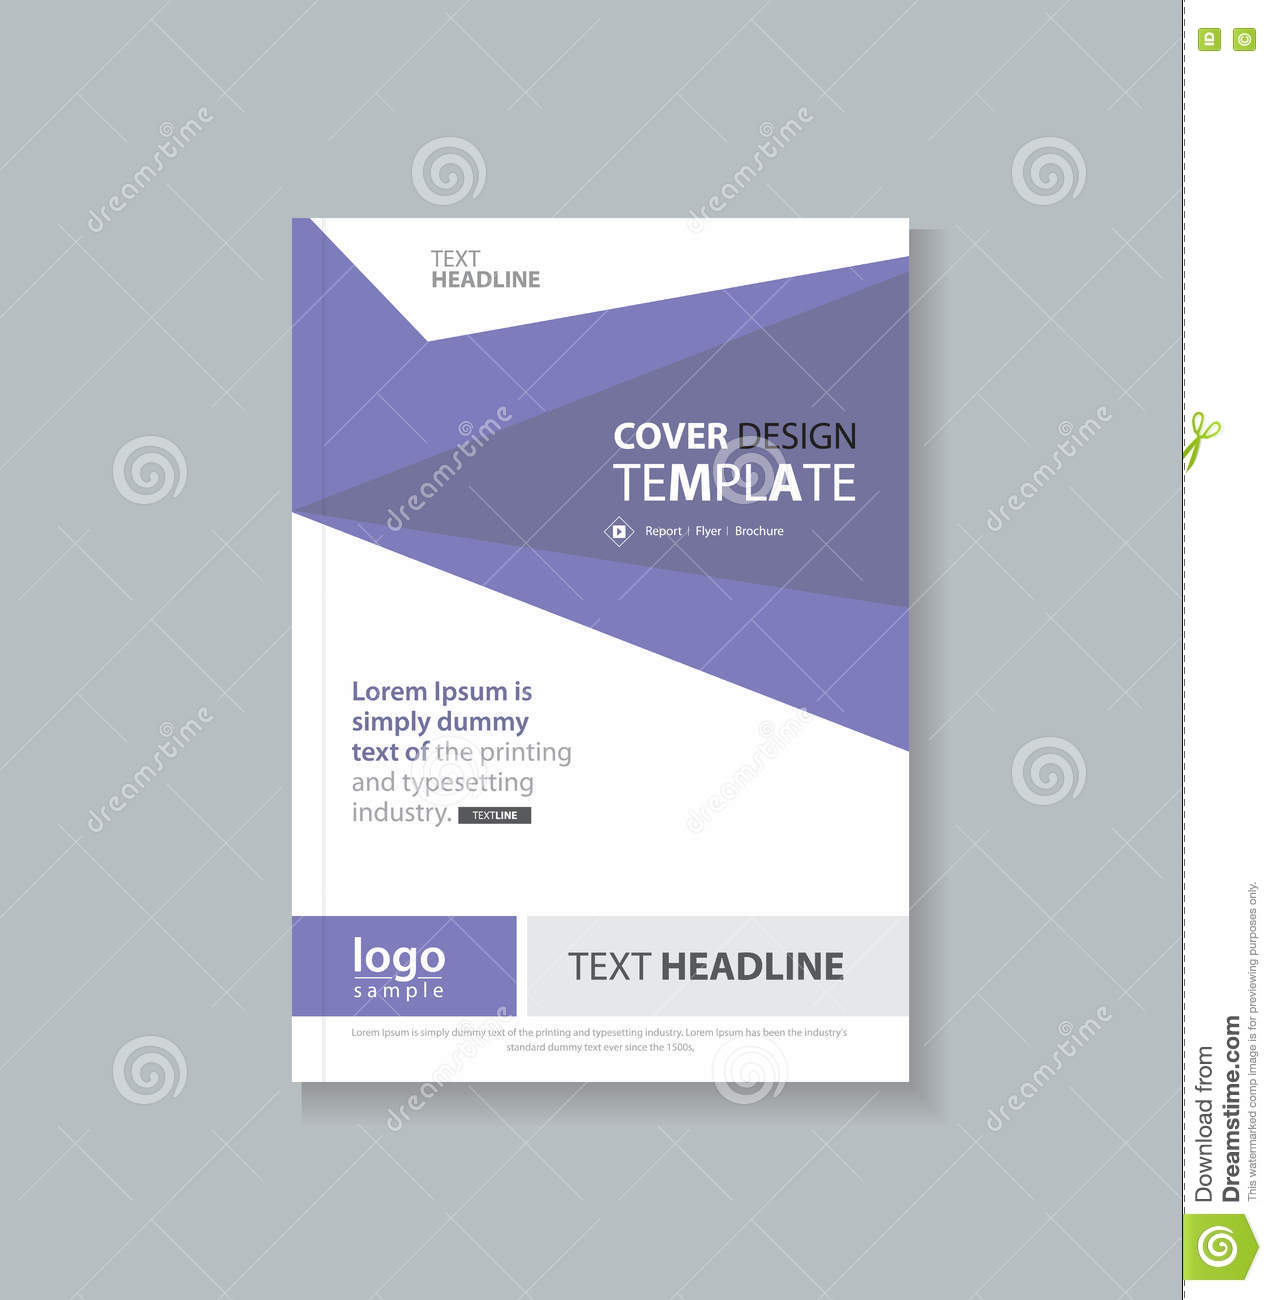 Doc826527 Sample Annual Report of a Company Sample Annual – Sample Annual Report of a Company